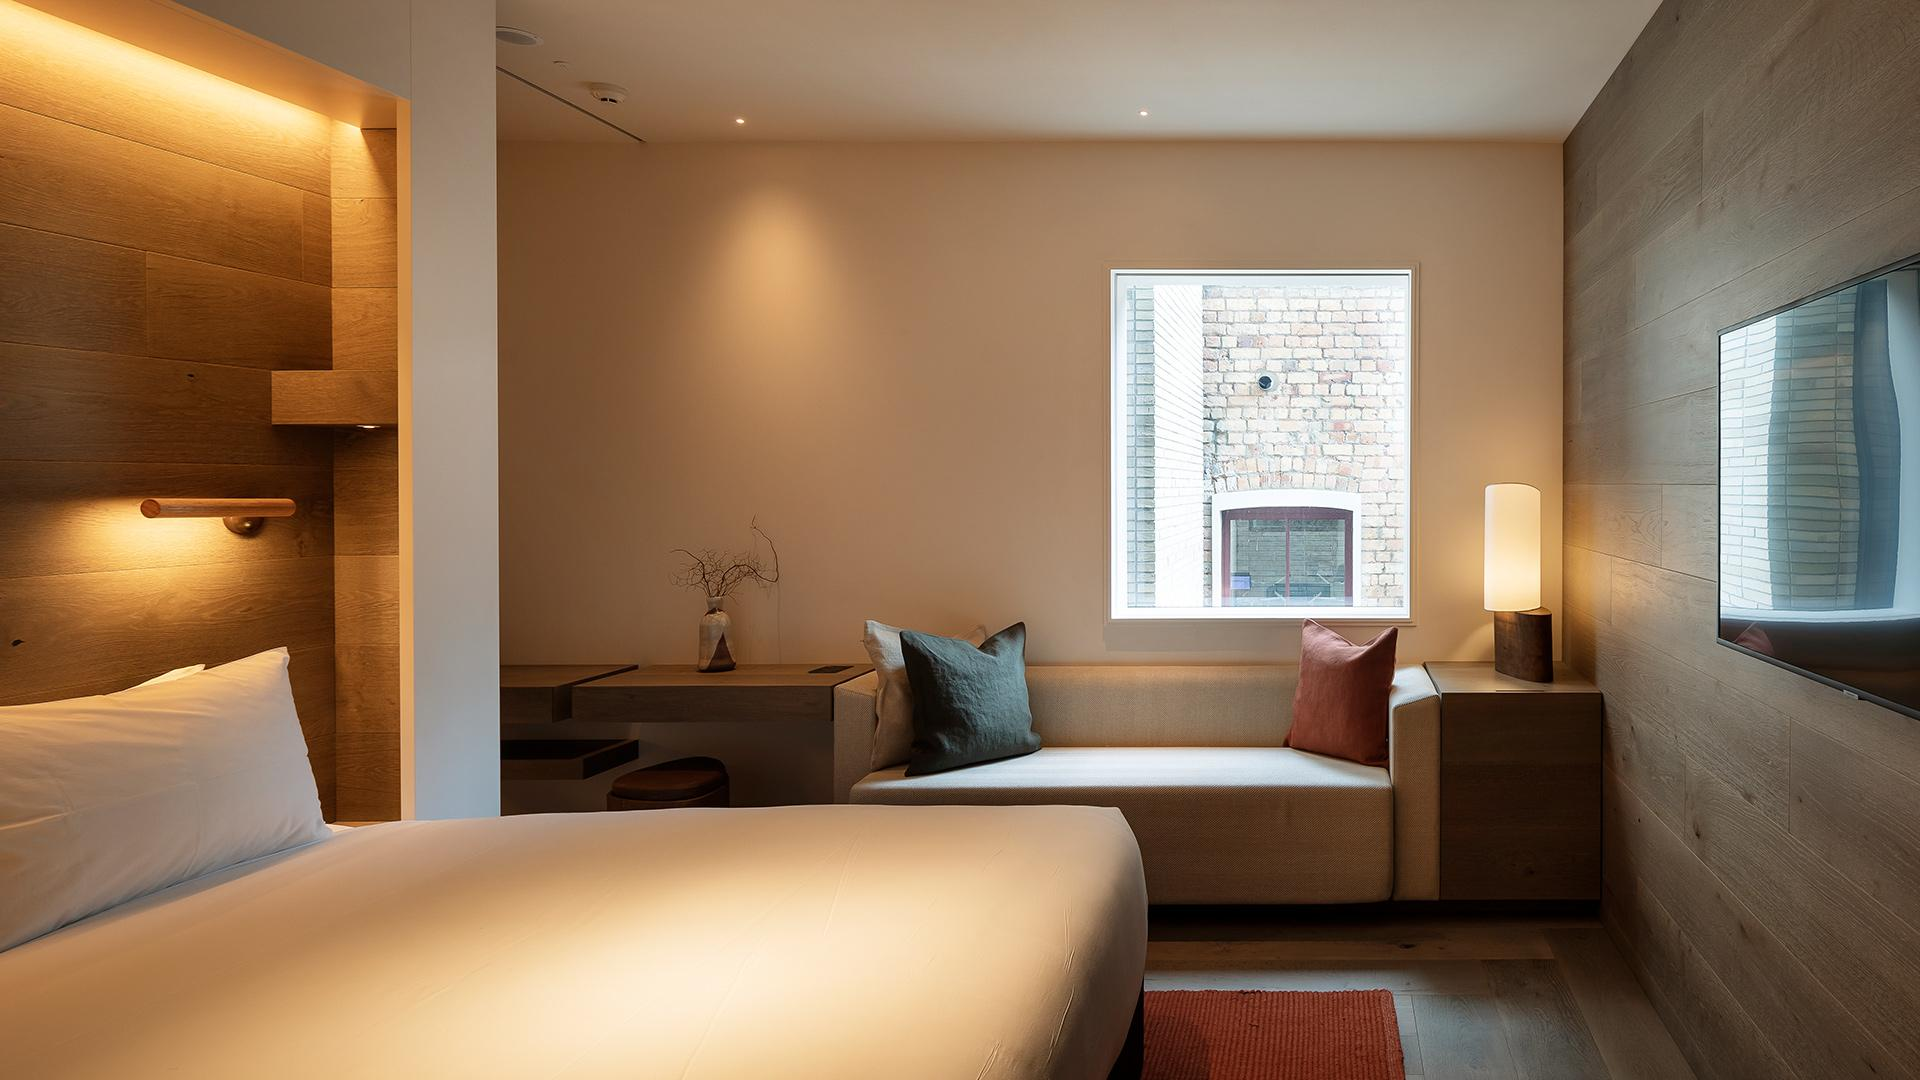 Laneway Room image 1 at The Hotel Britomart by null, Auckland, New Zealand